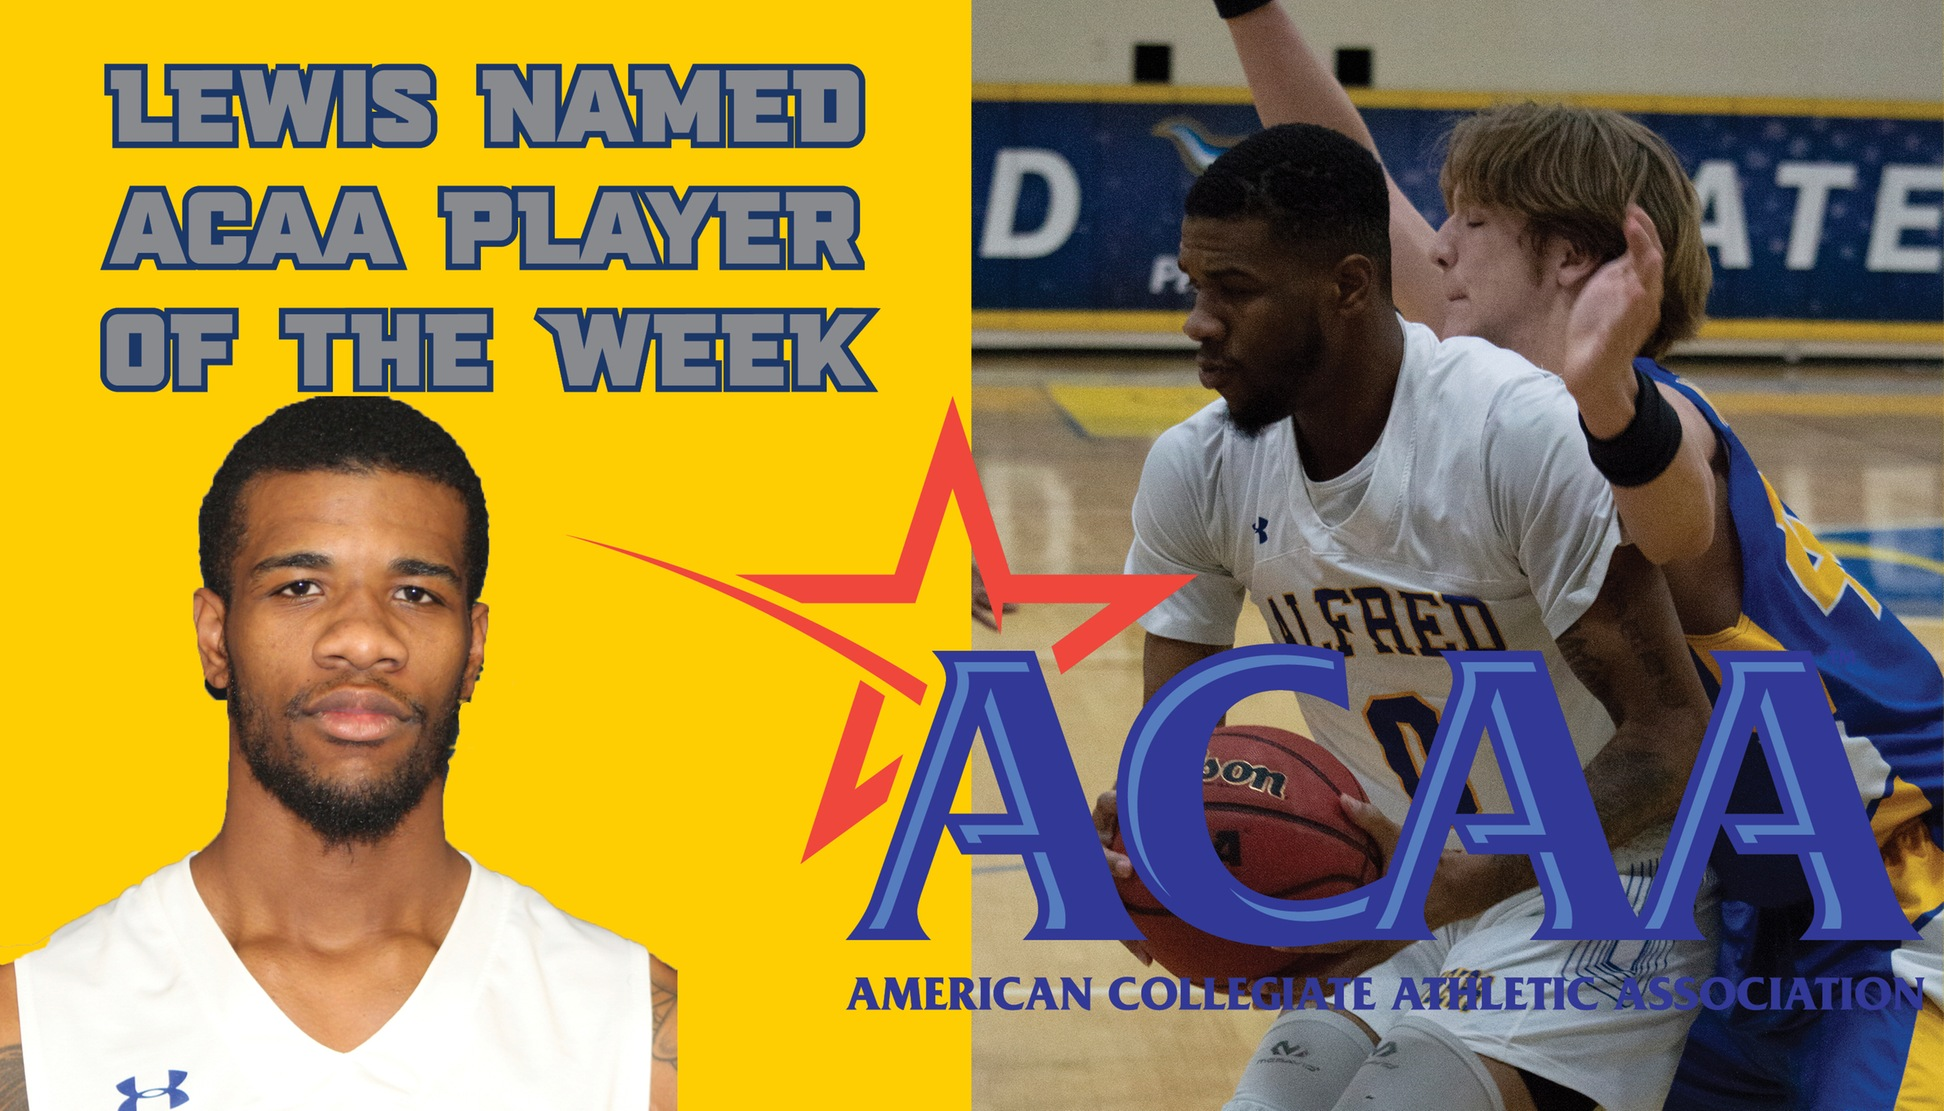 Taj Lewis Named ACAA Player of the Week